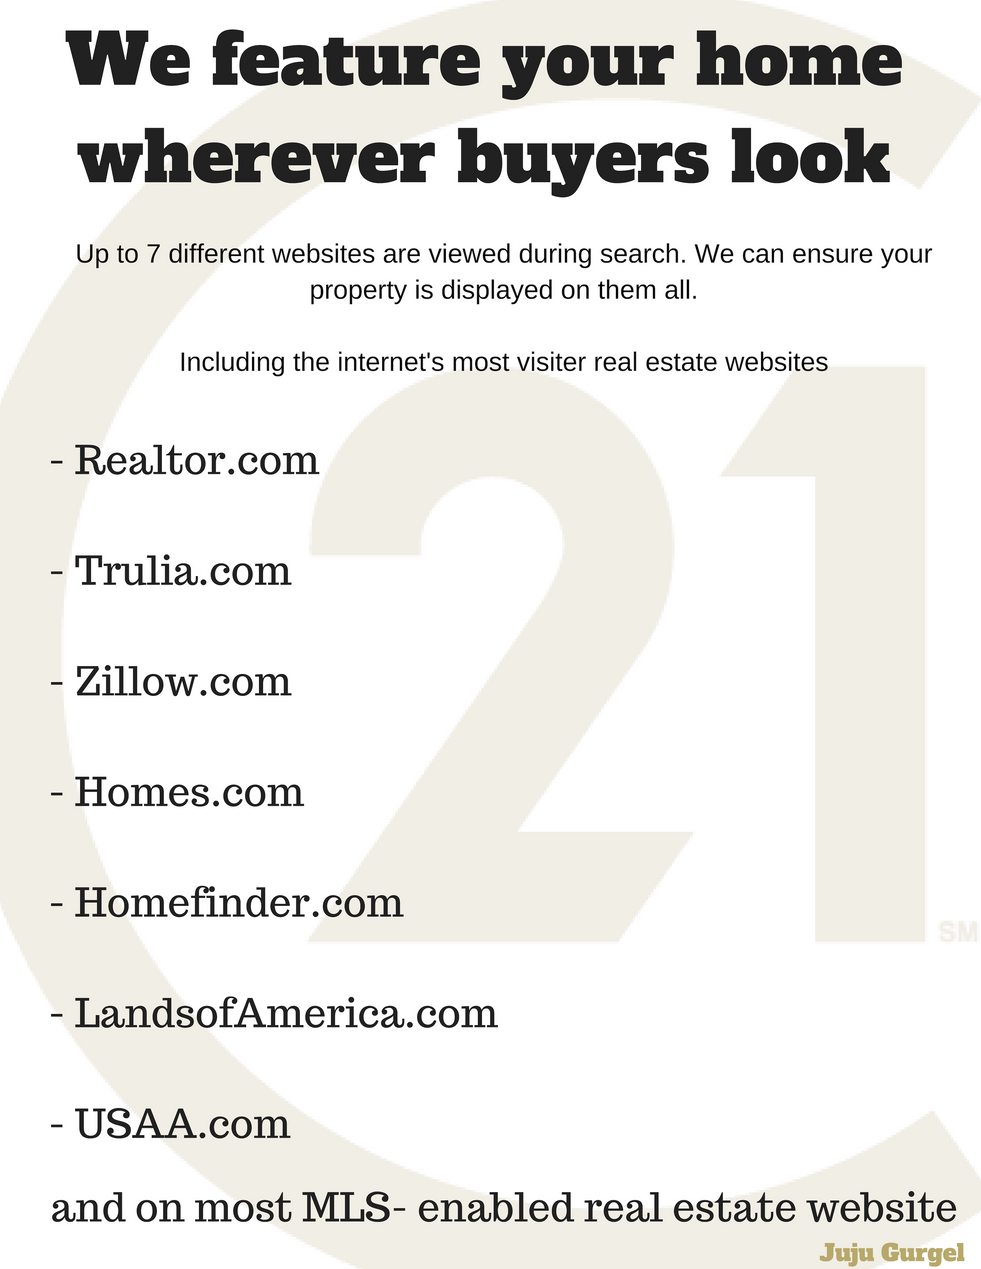 We feature your home wherever buyers look